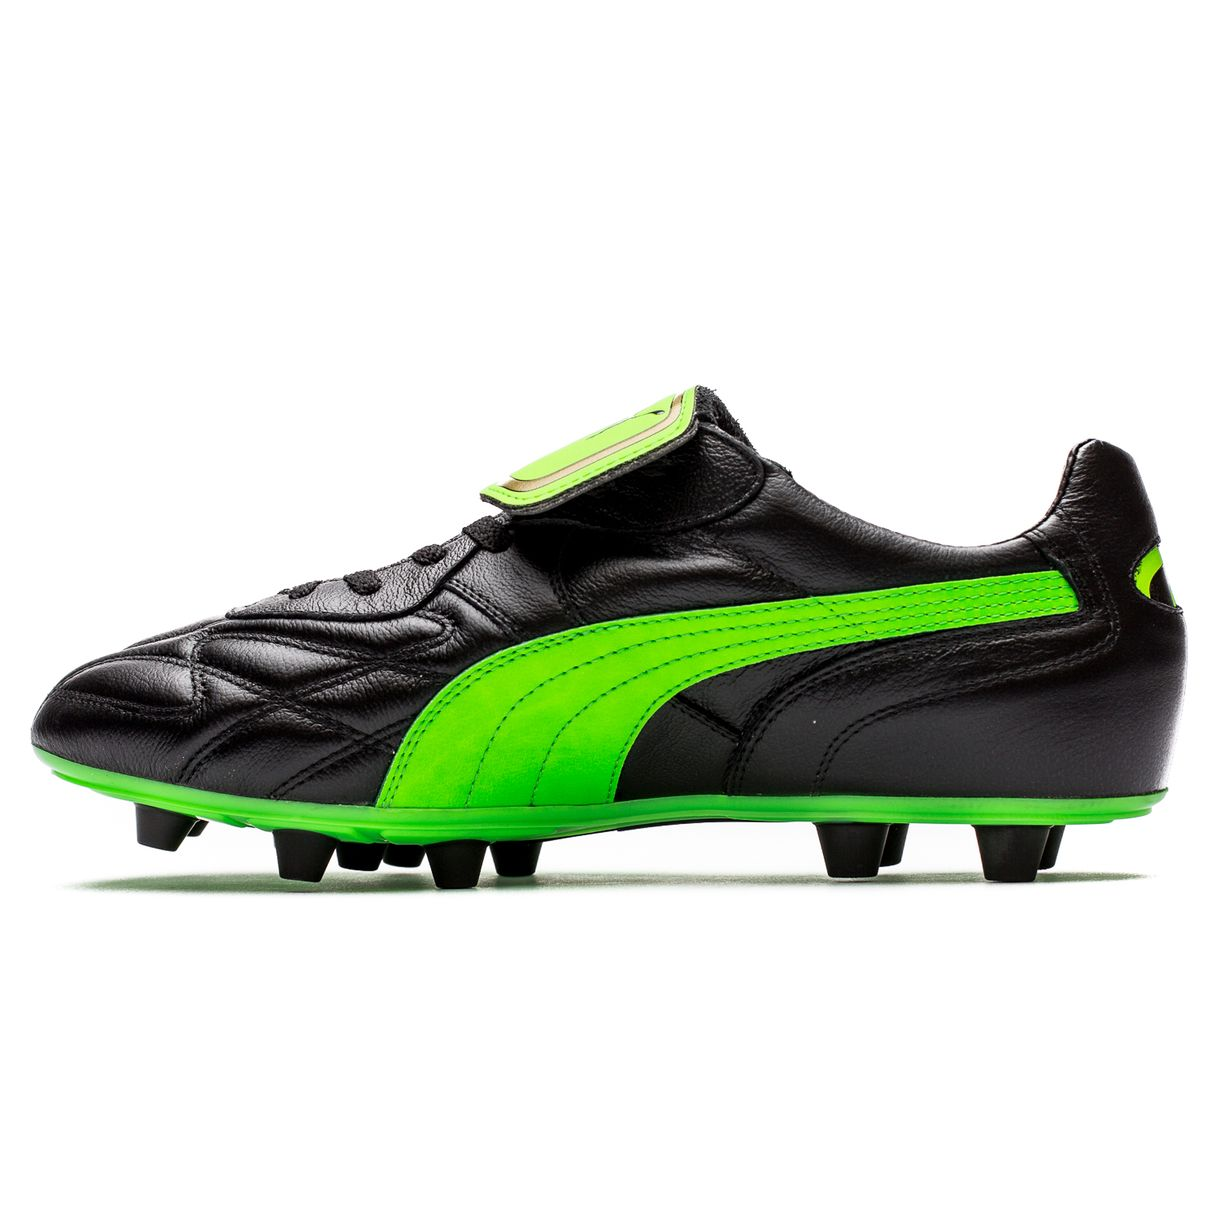 f3cb4fa7bde3e Click to enlarge image puma king top made in italy black green a.jpg  Click  to enlarge image puma king top made in italy black green b.jpg ...